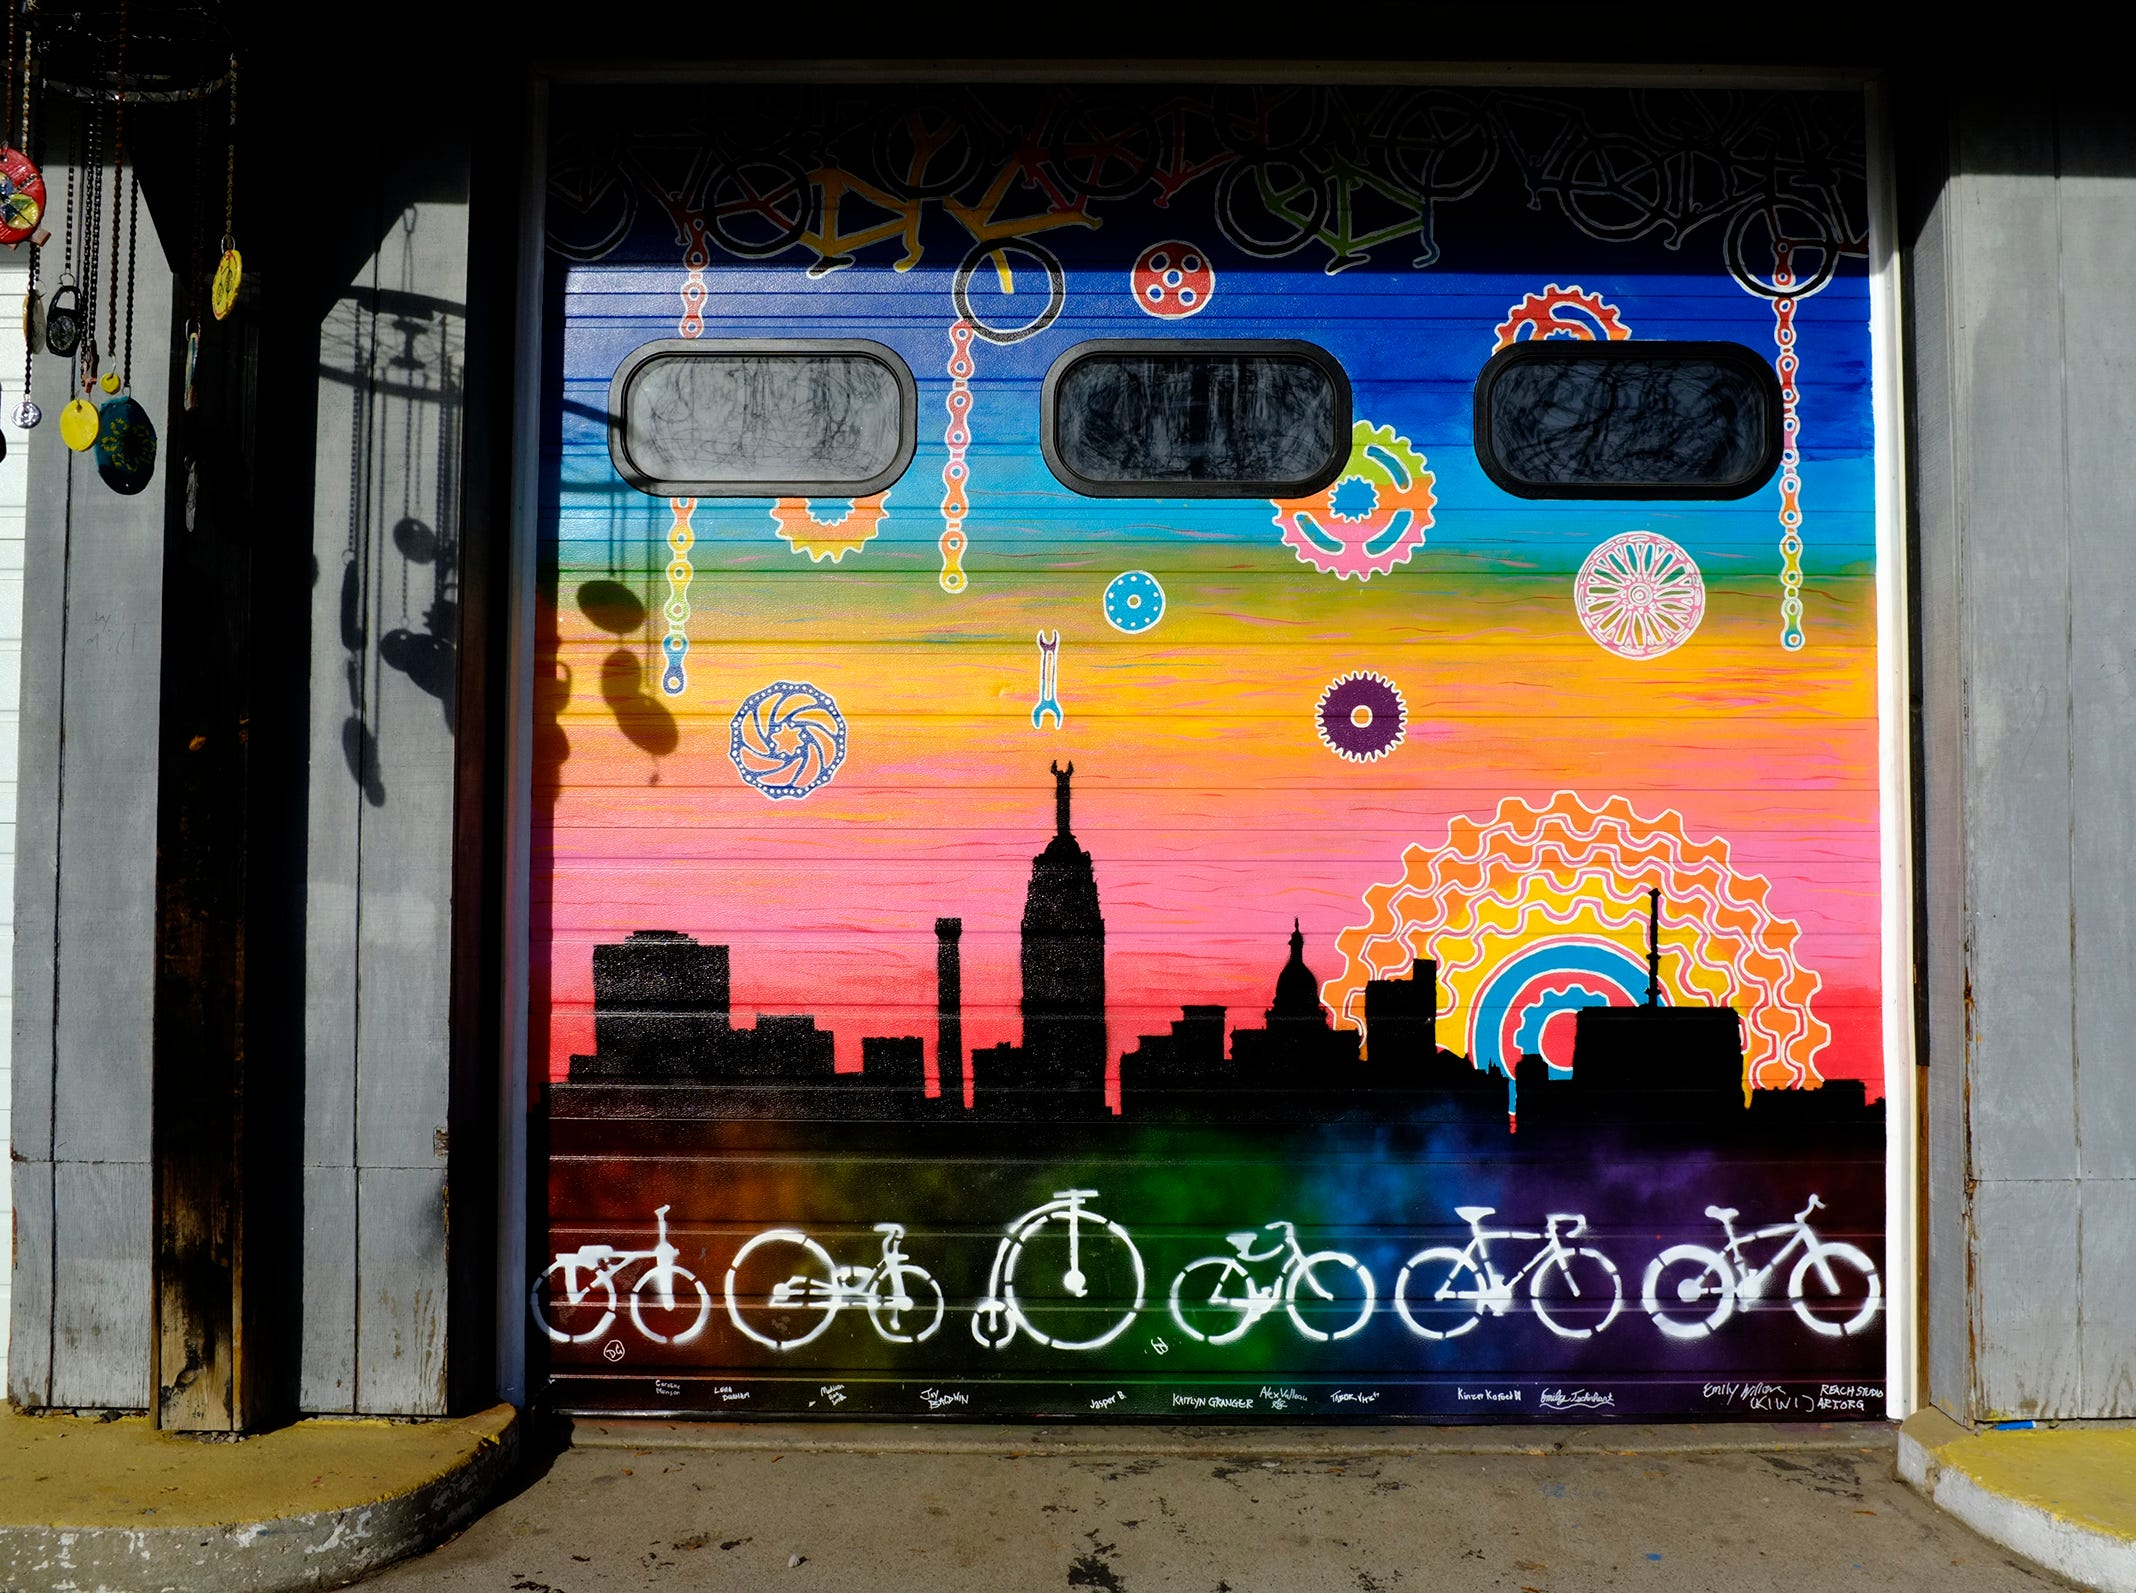 This bike shop on Kalamazoo Street in Lansing sports a mural created by Reach Studio.